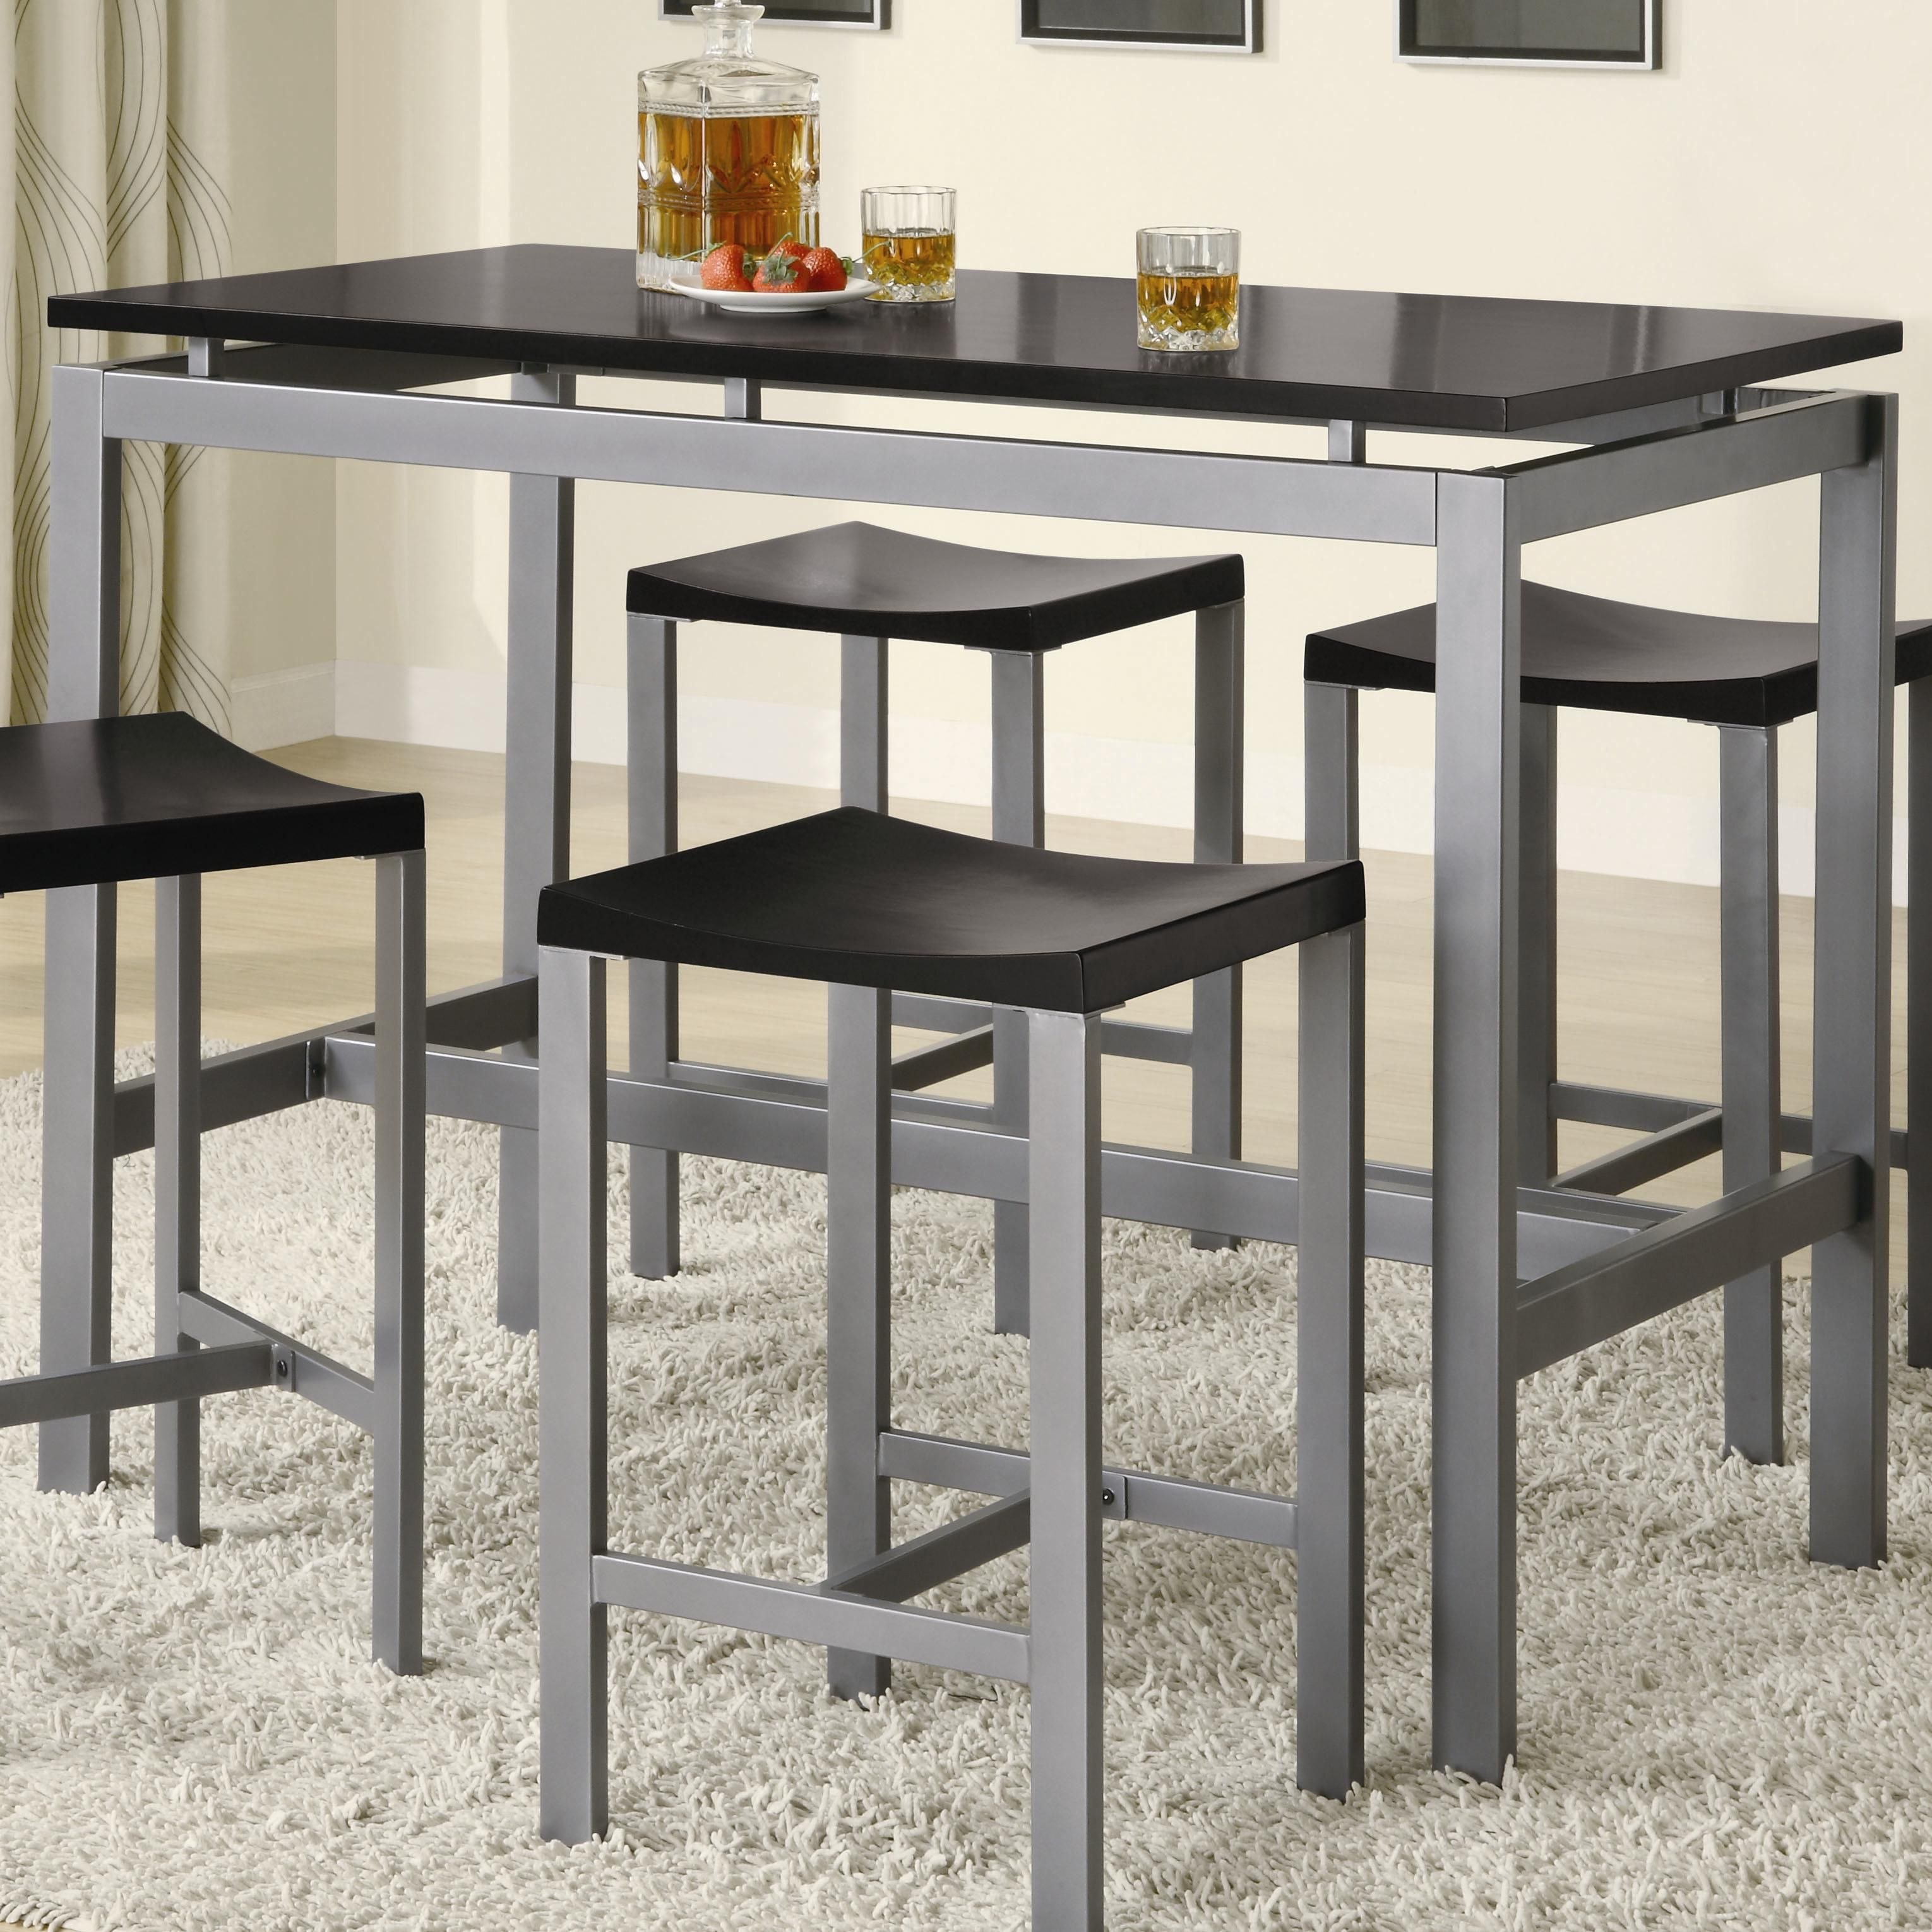 Small metal kitchen table - Minimalist Counter Height Dining Table Set By True Contemporary